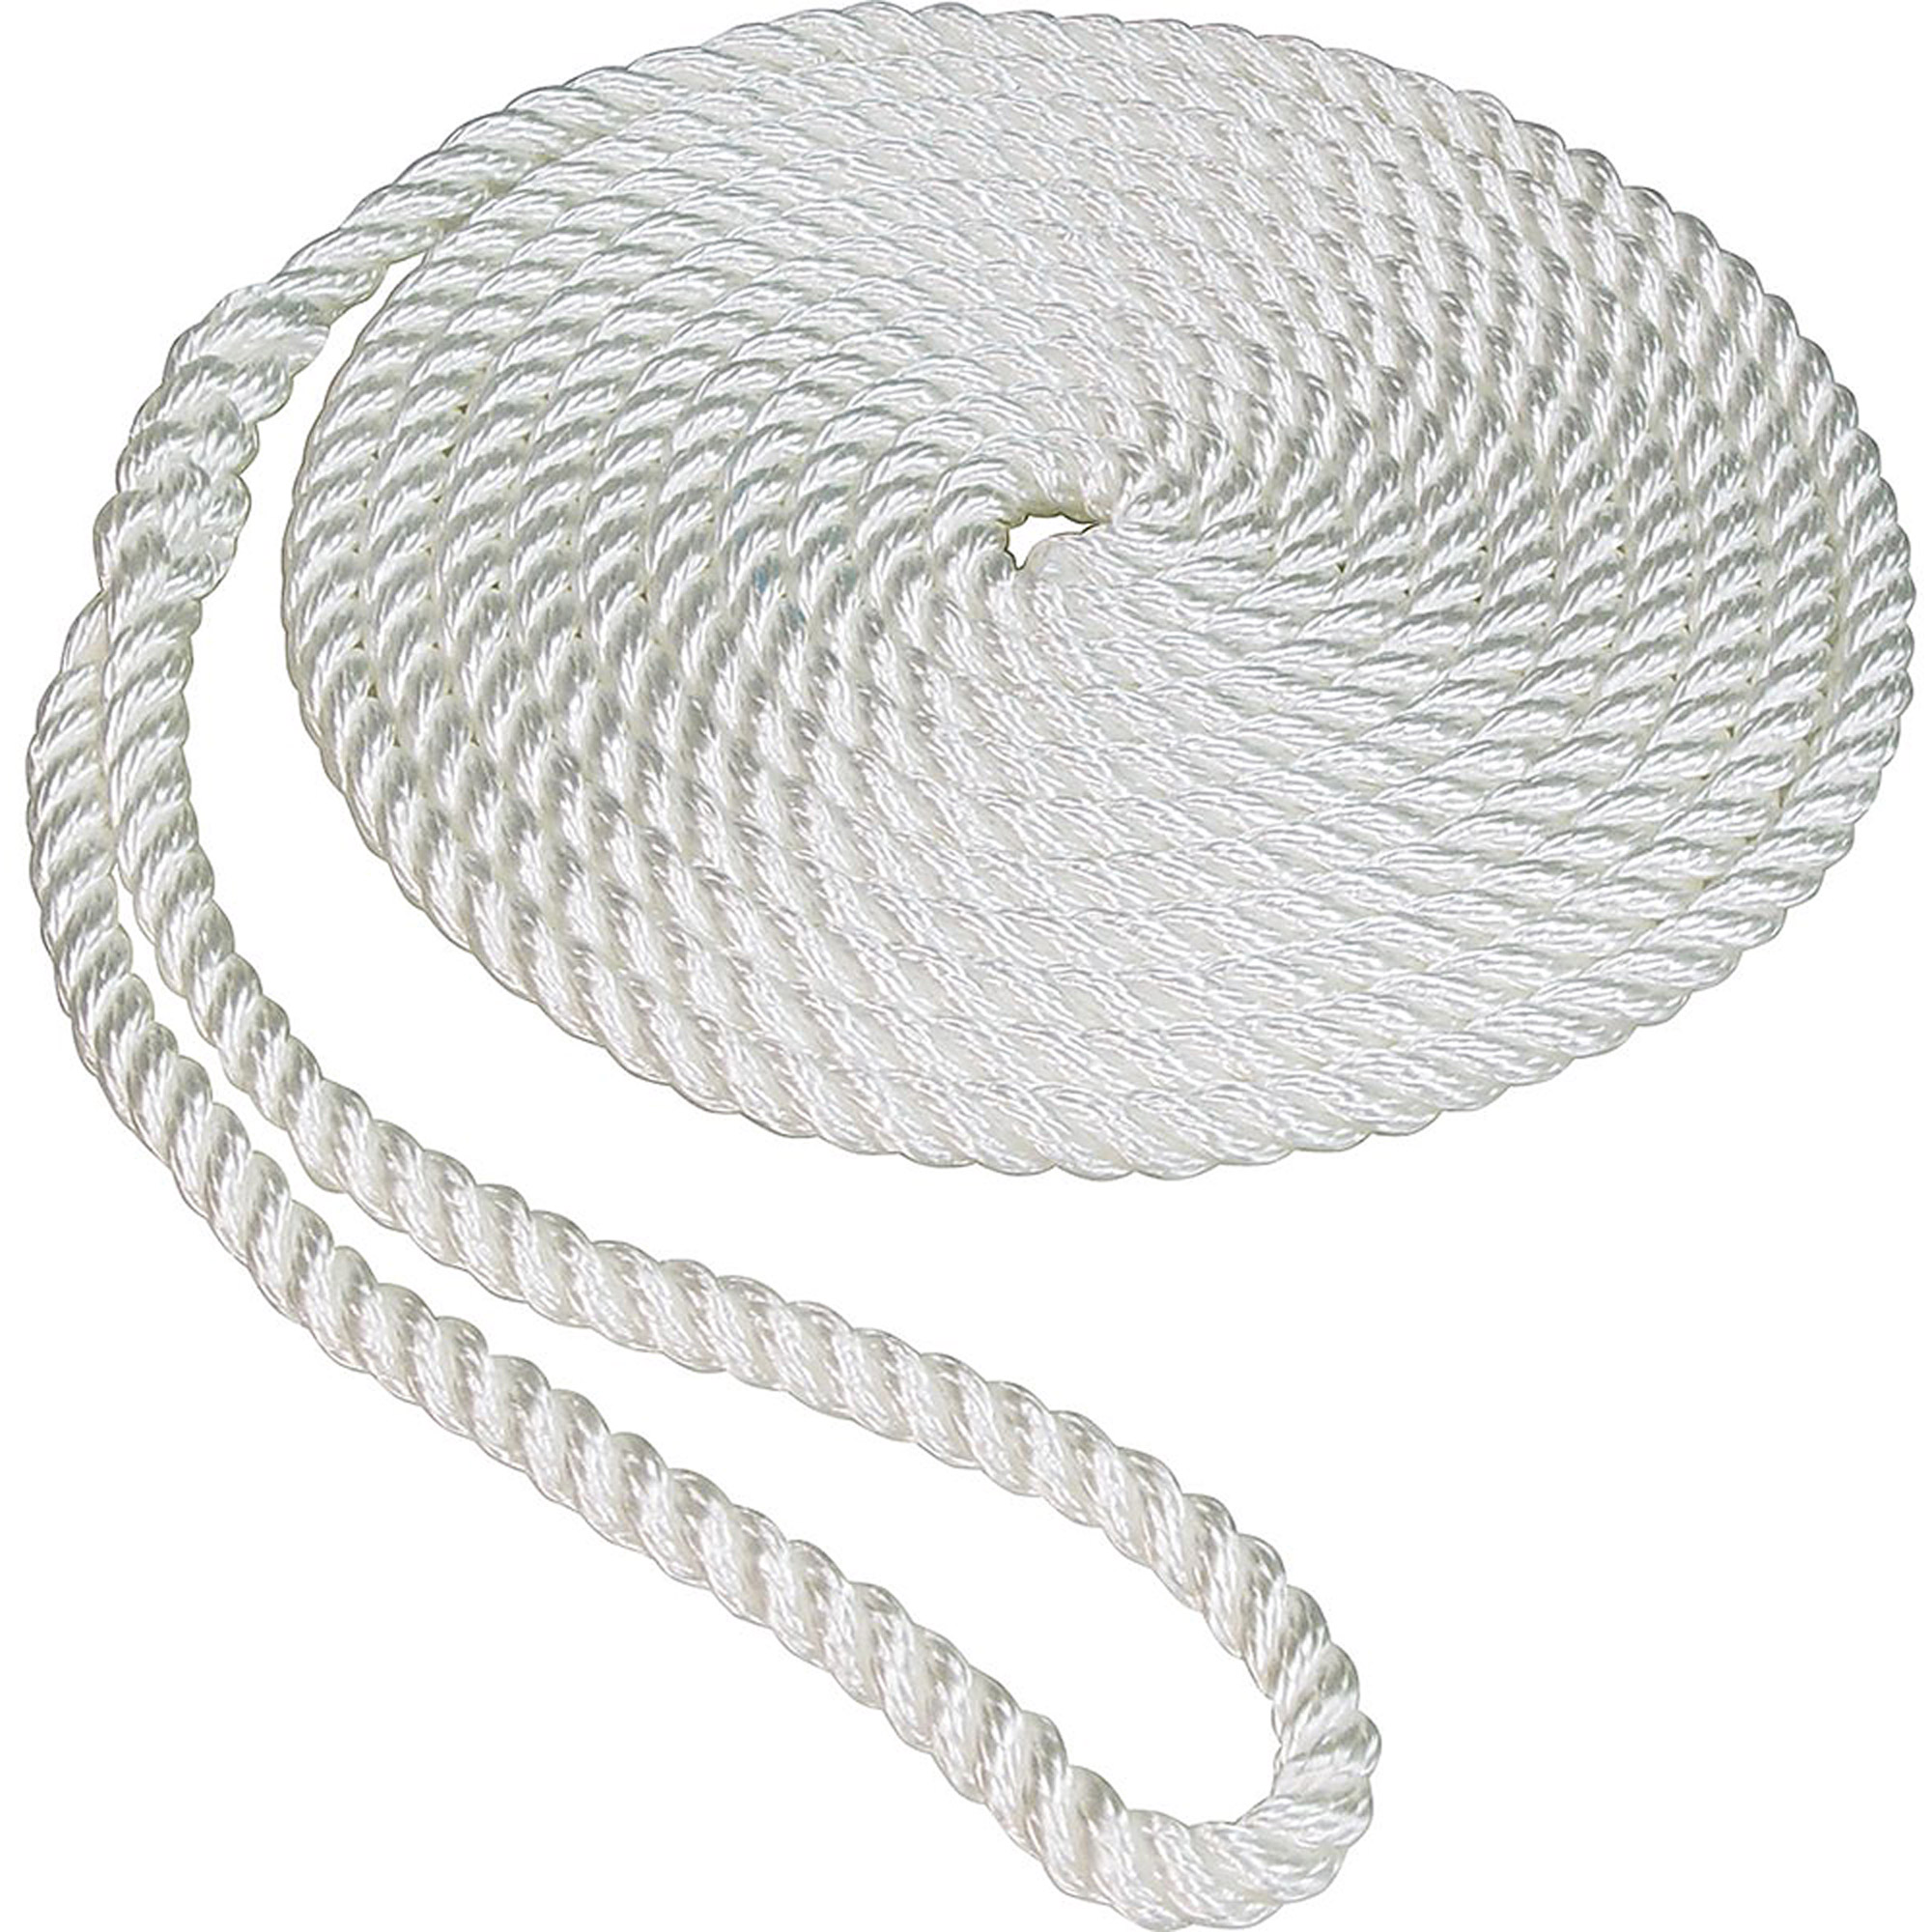 "SeaSense Twisted Nylon Dock Line, 3 8"" x 20', 10"" Eye, White by Generic"